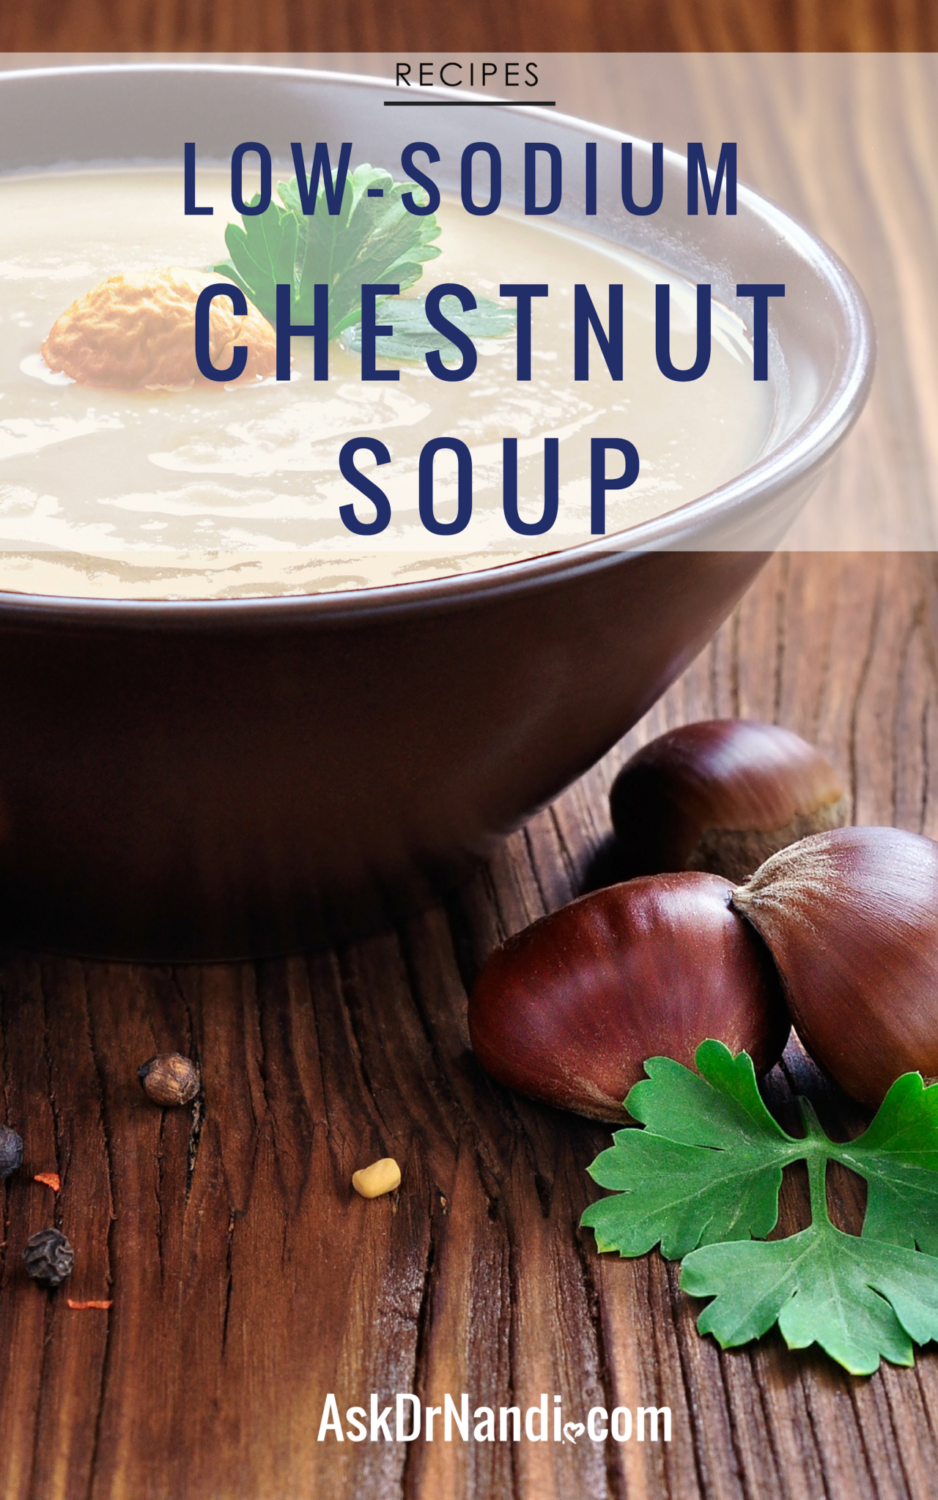 A Must Try Chestnut Soup Recipe by Dr. Nandi!